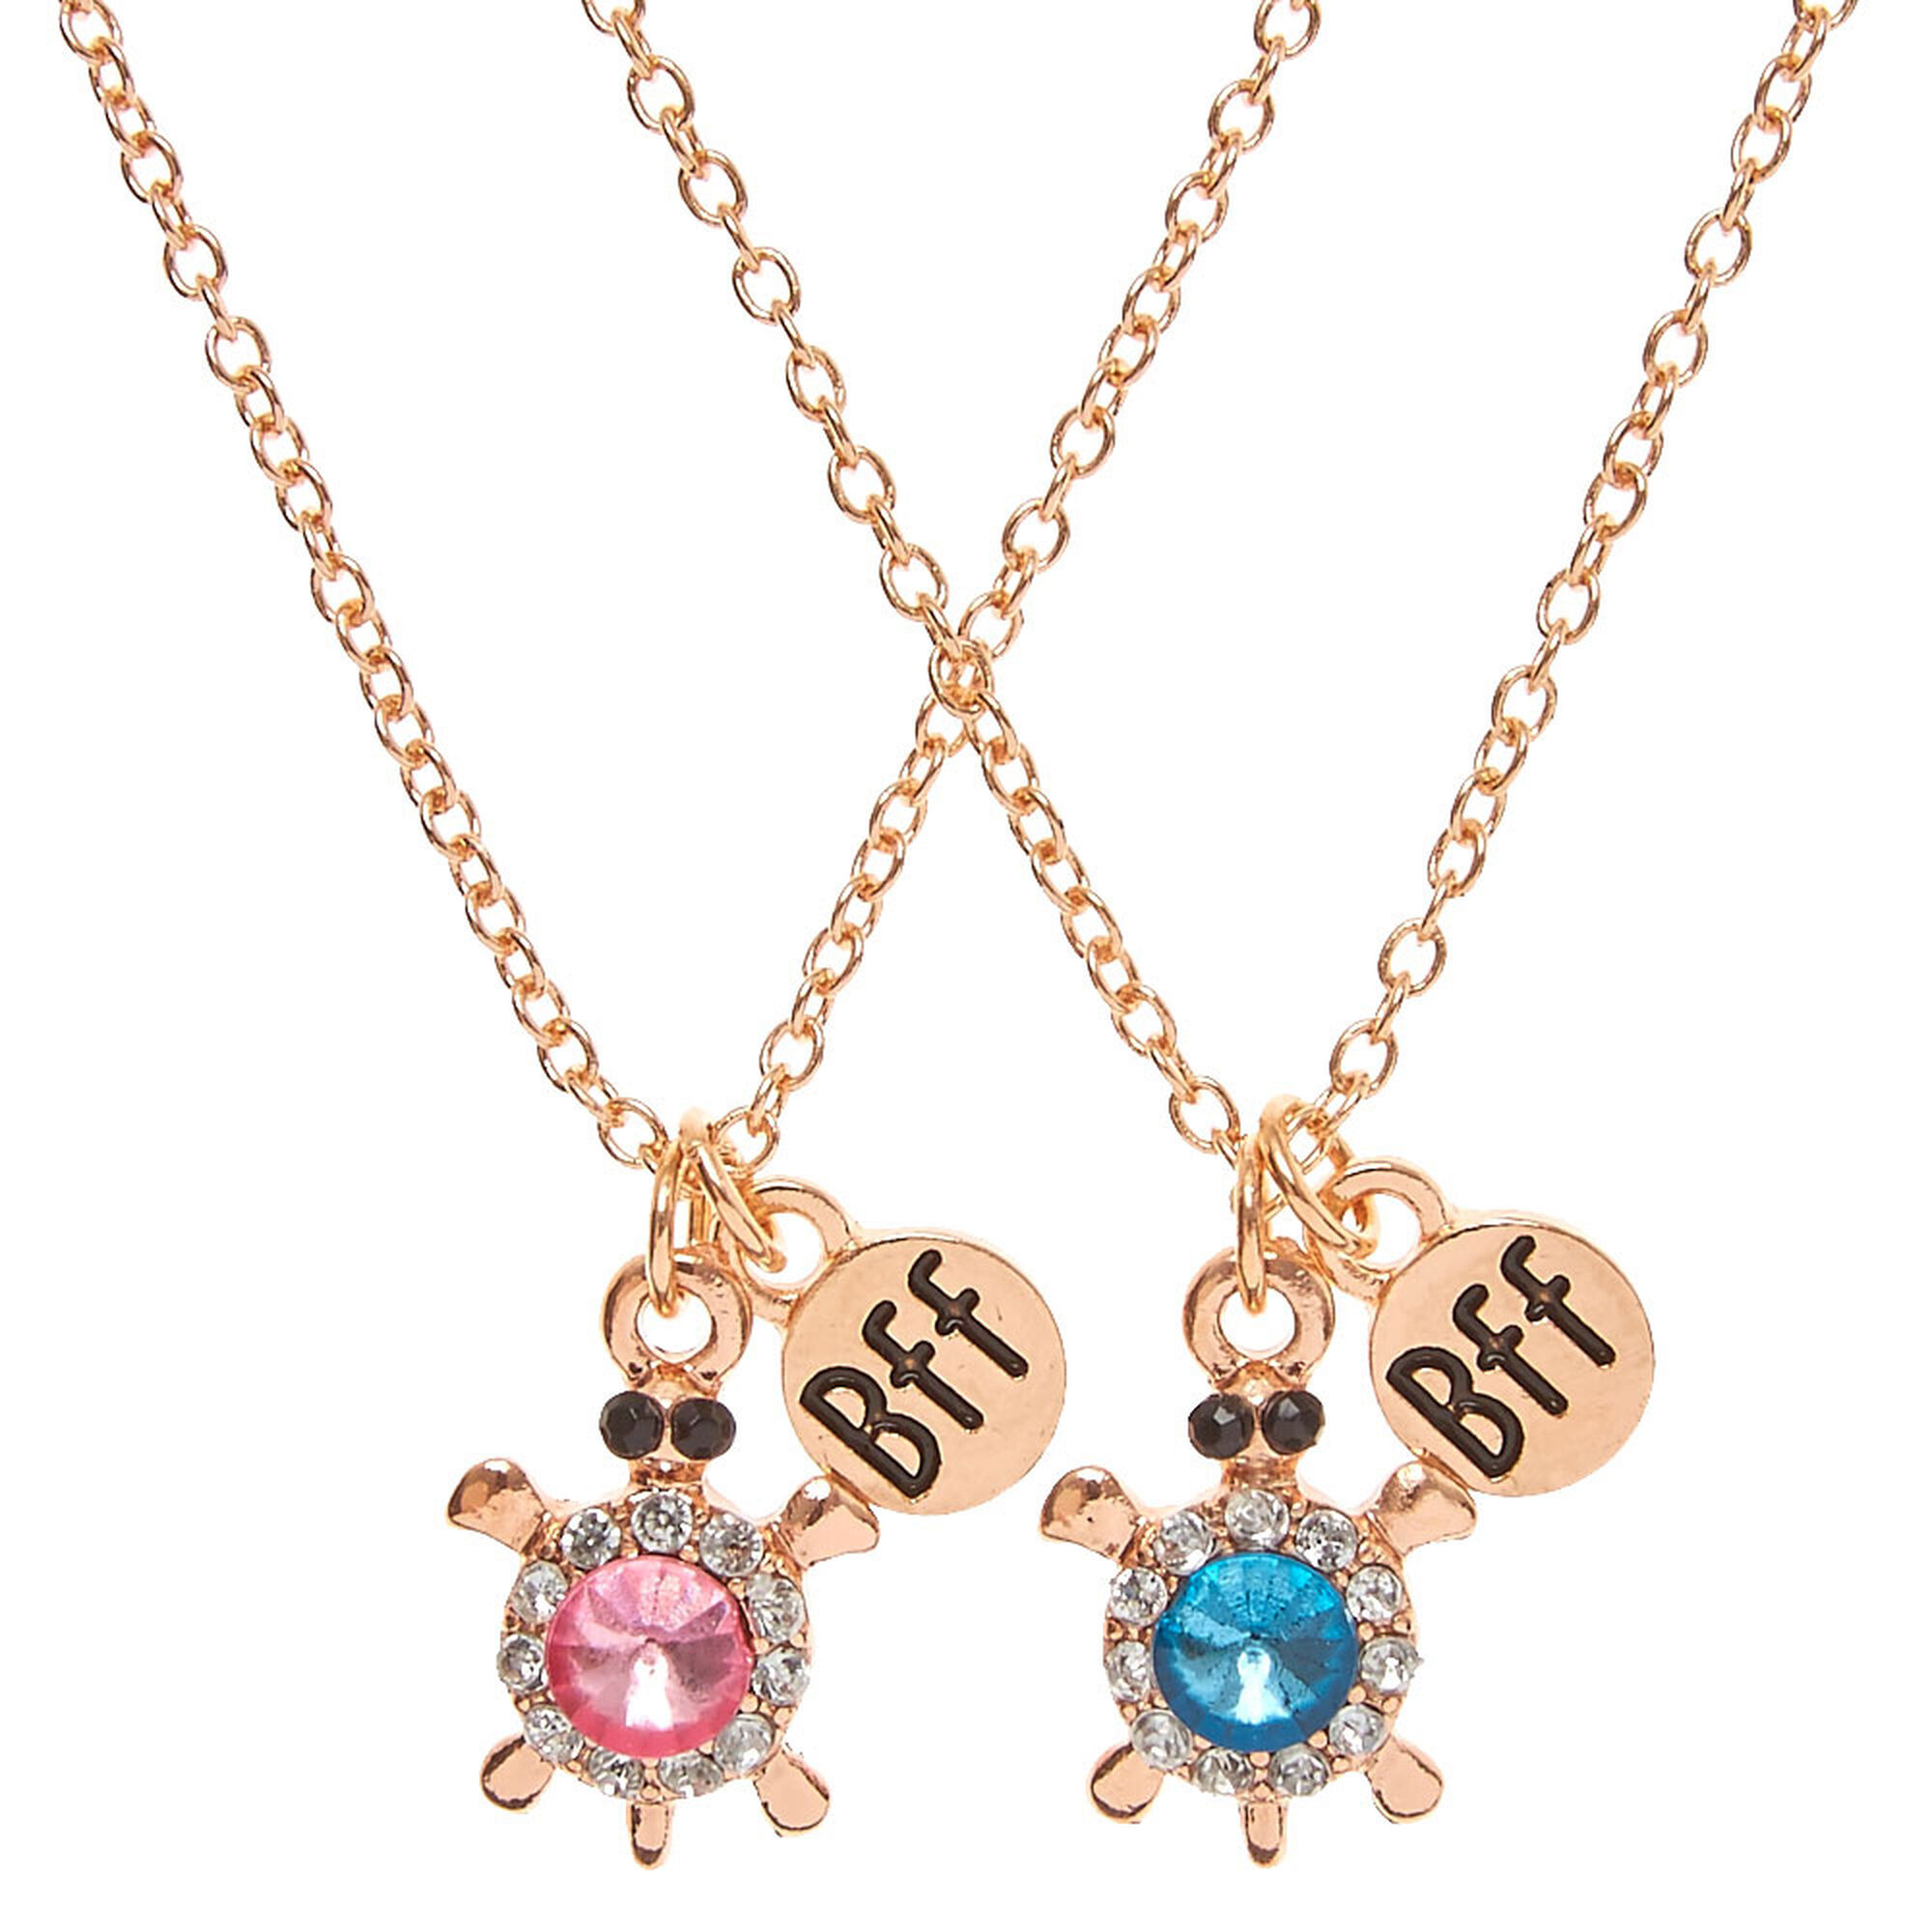 Best friends rose gold tone crystal turtle pendant necklaces claires best friends rose gold tone crystal turtle pendant necklaces aloadofball Choice Image